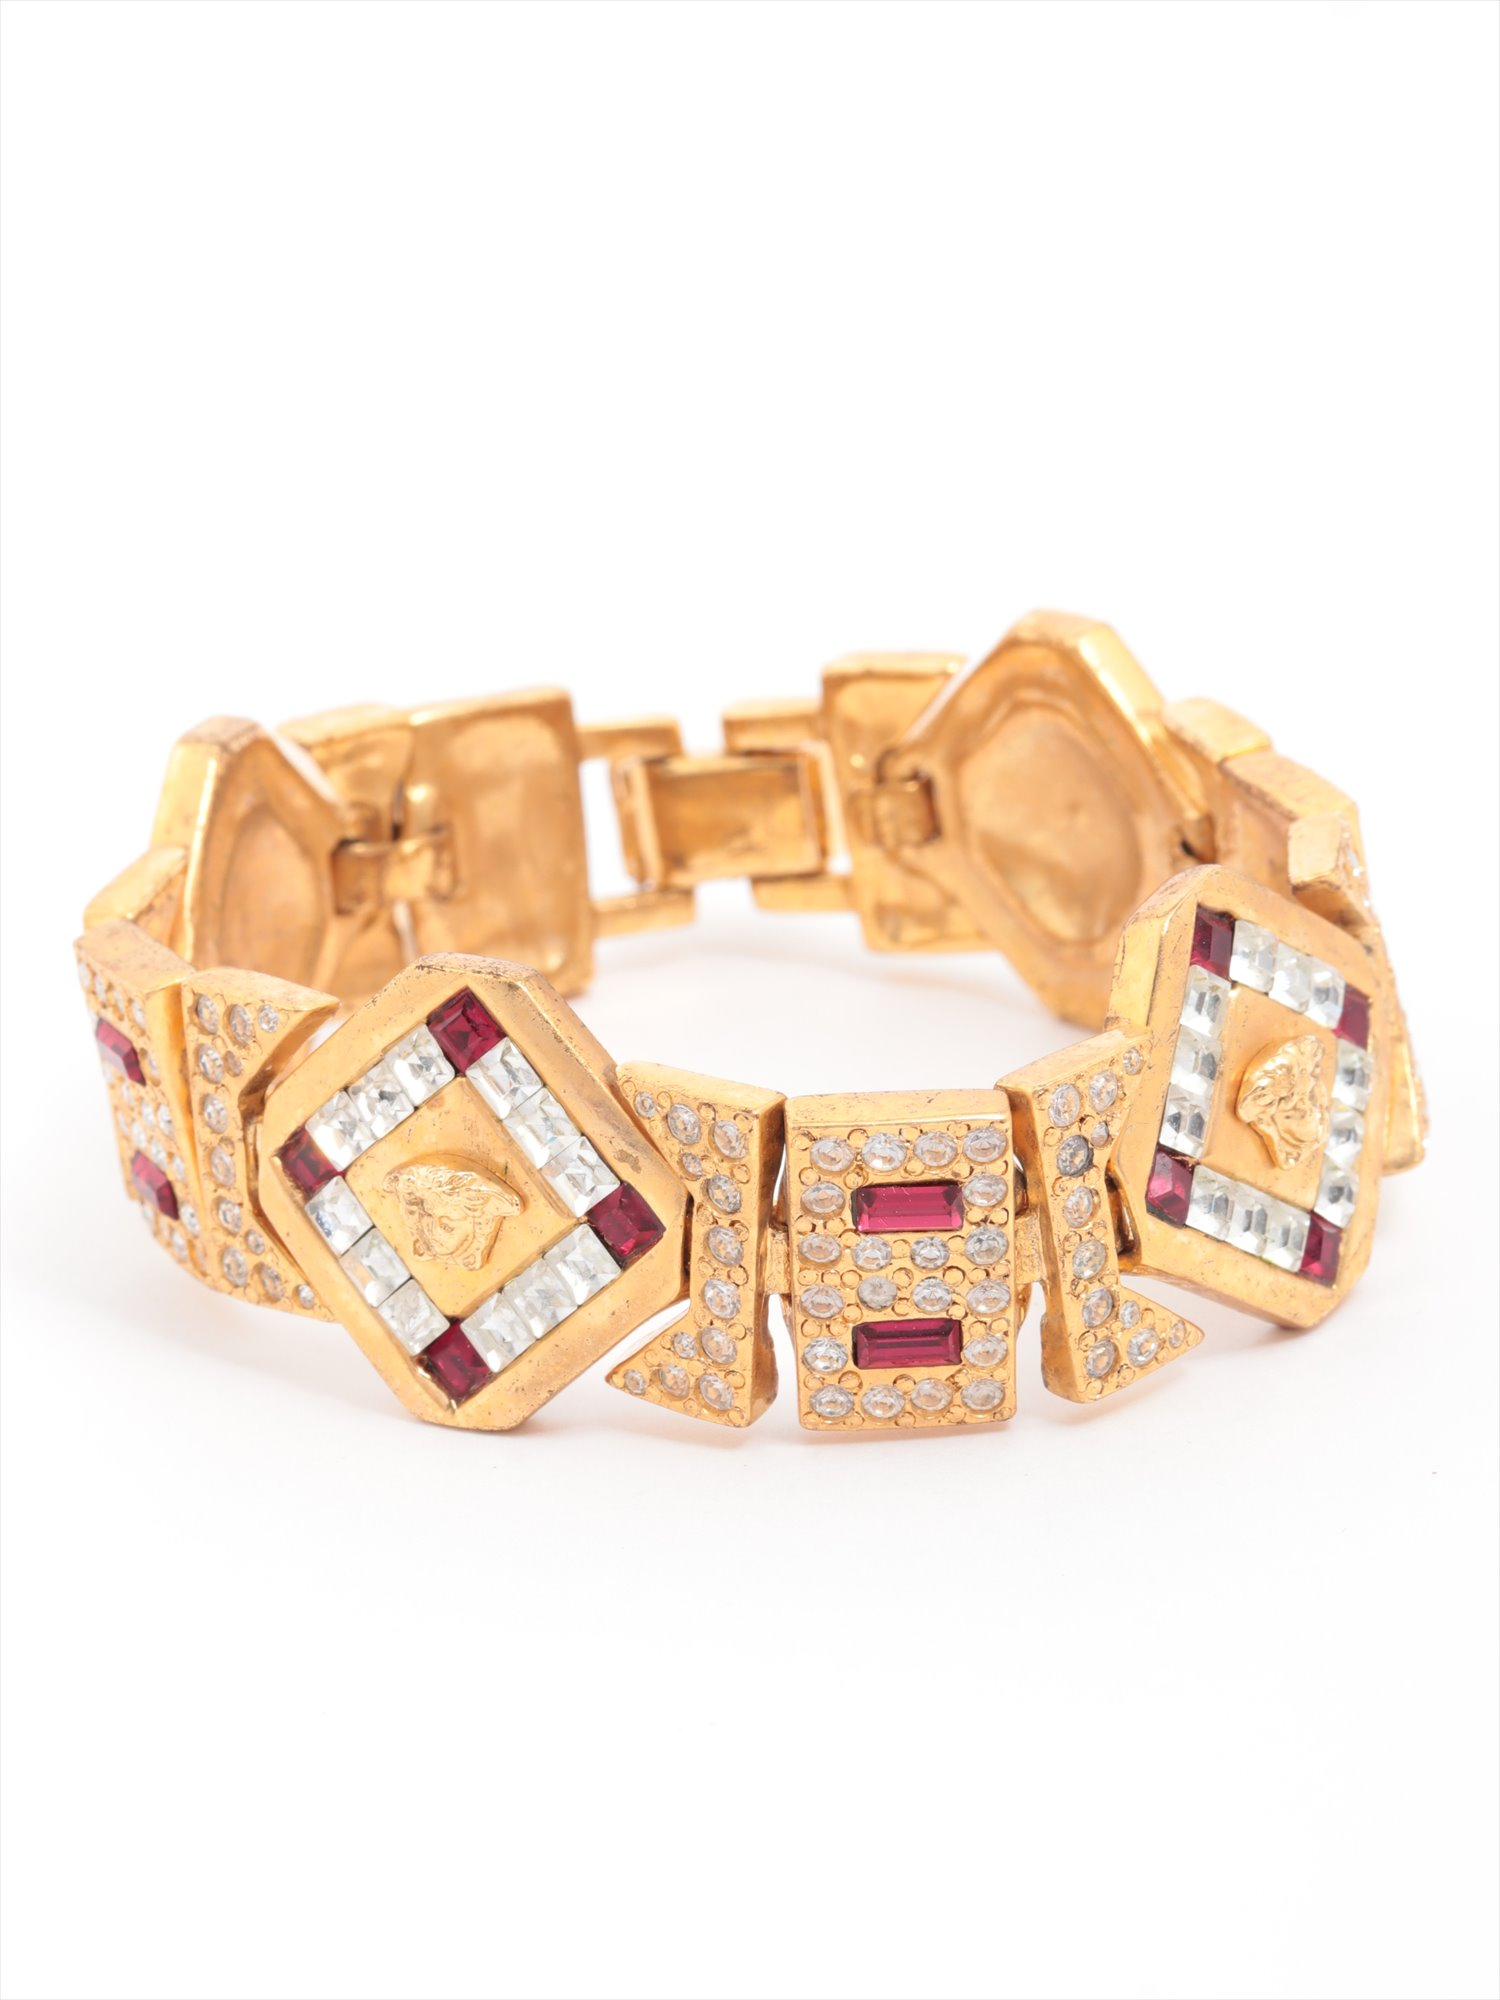 [Used article] Versace Medusa bracelet GP gold rhinestone